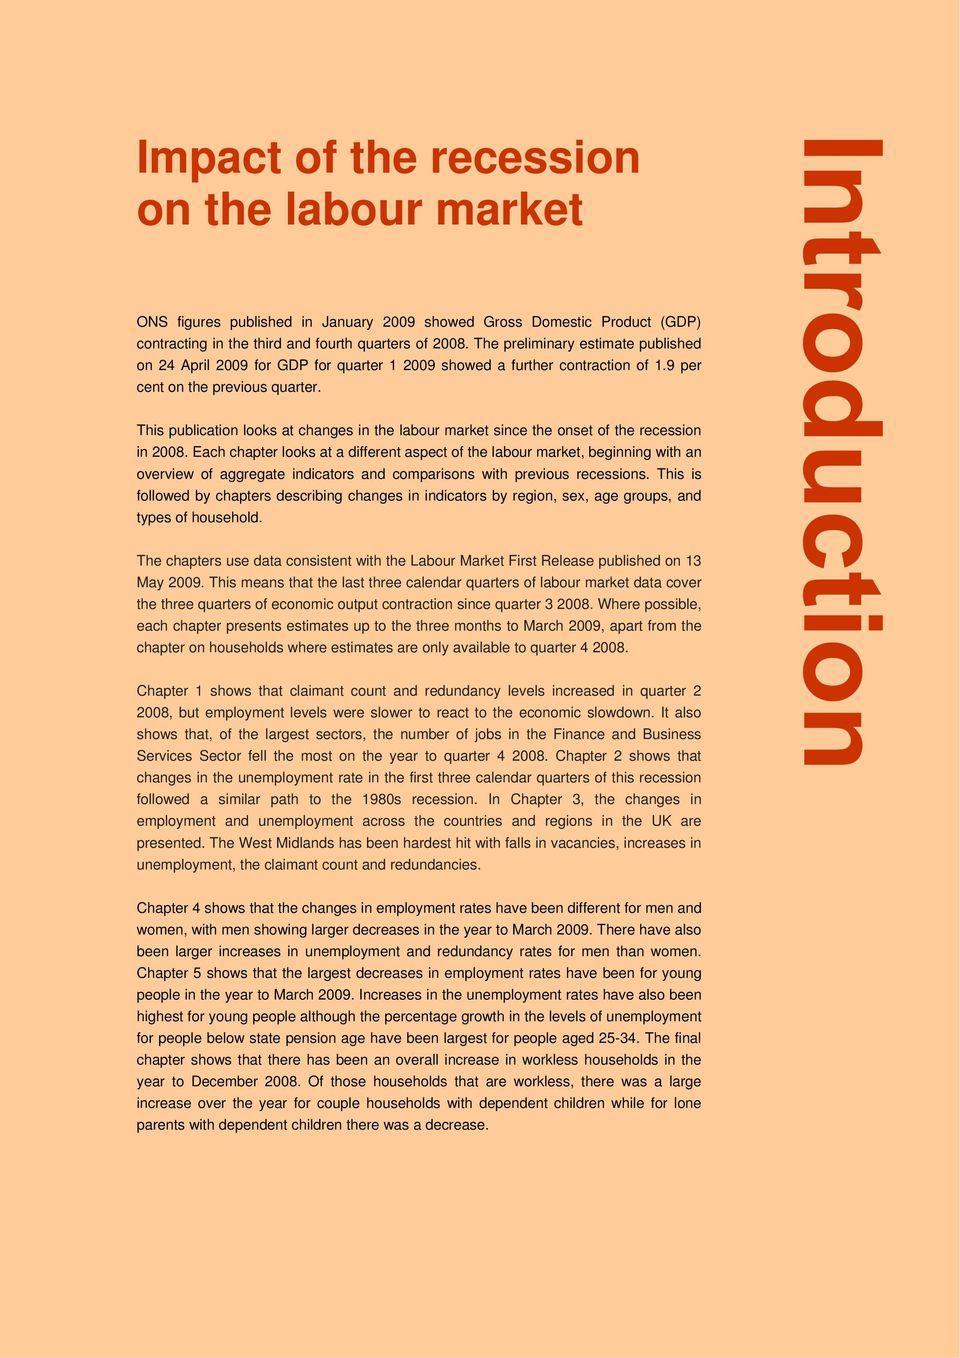 This publication looks at changes in the labour market since the onset of the recession in 2008.